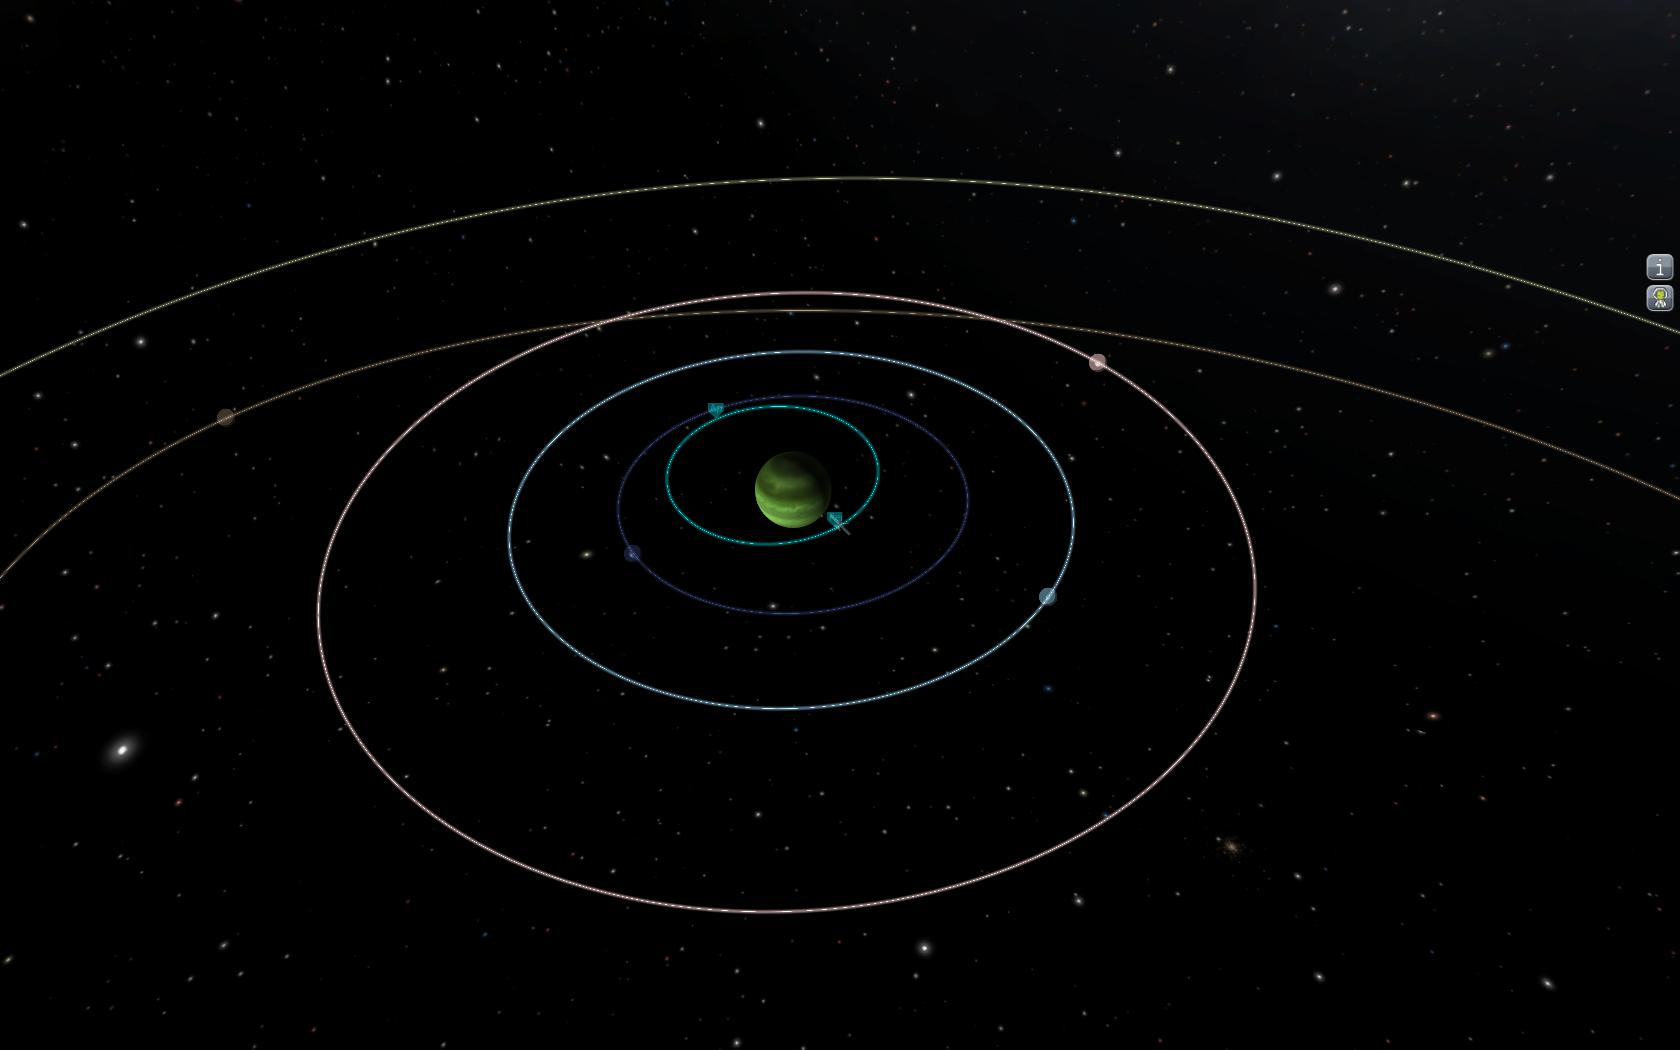 ksp planets and moons - photo #44